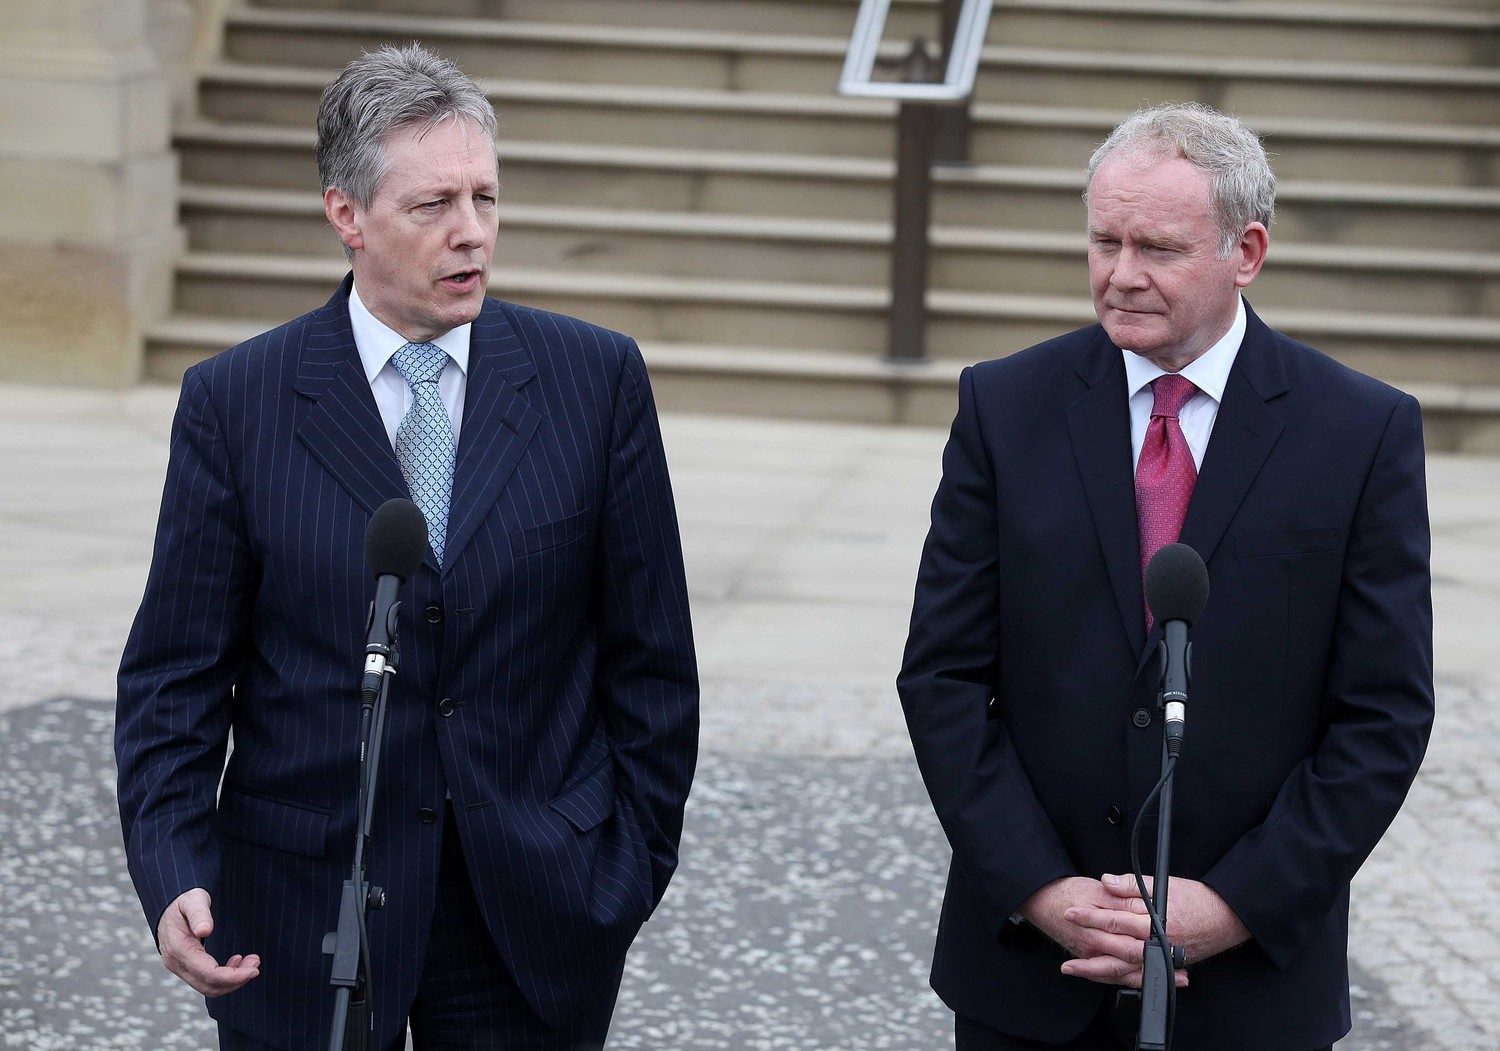 First Ministers' department told it must respond to our questions